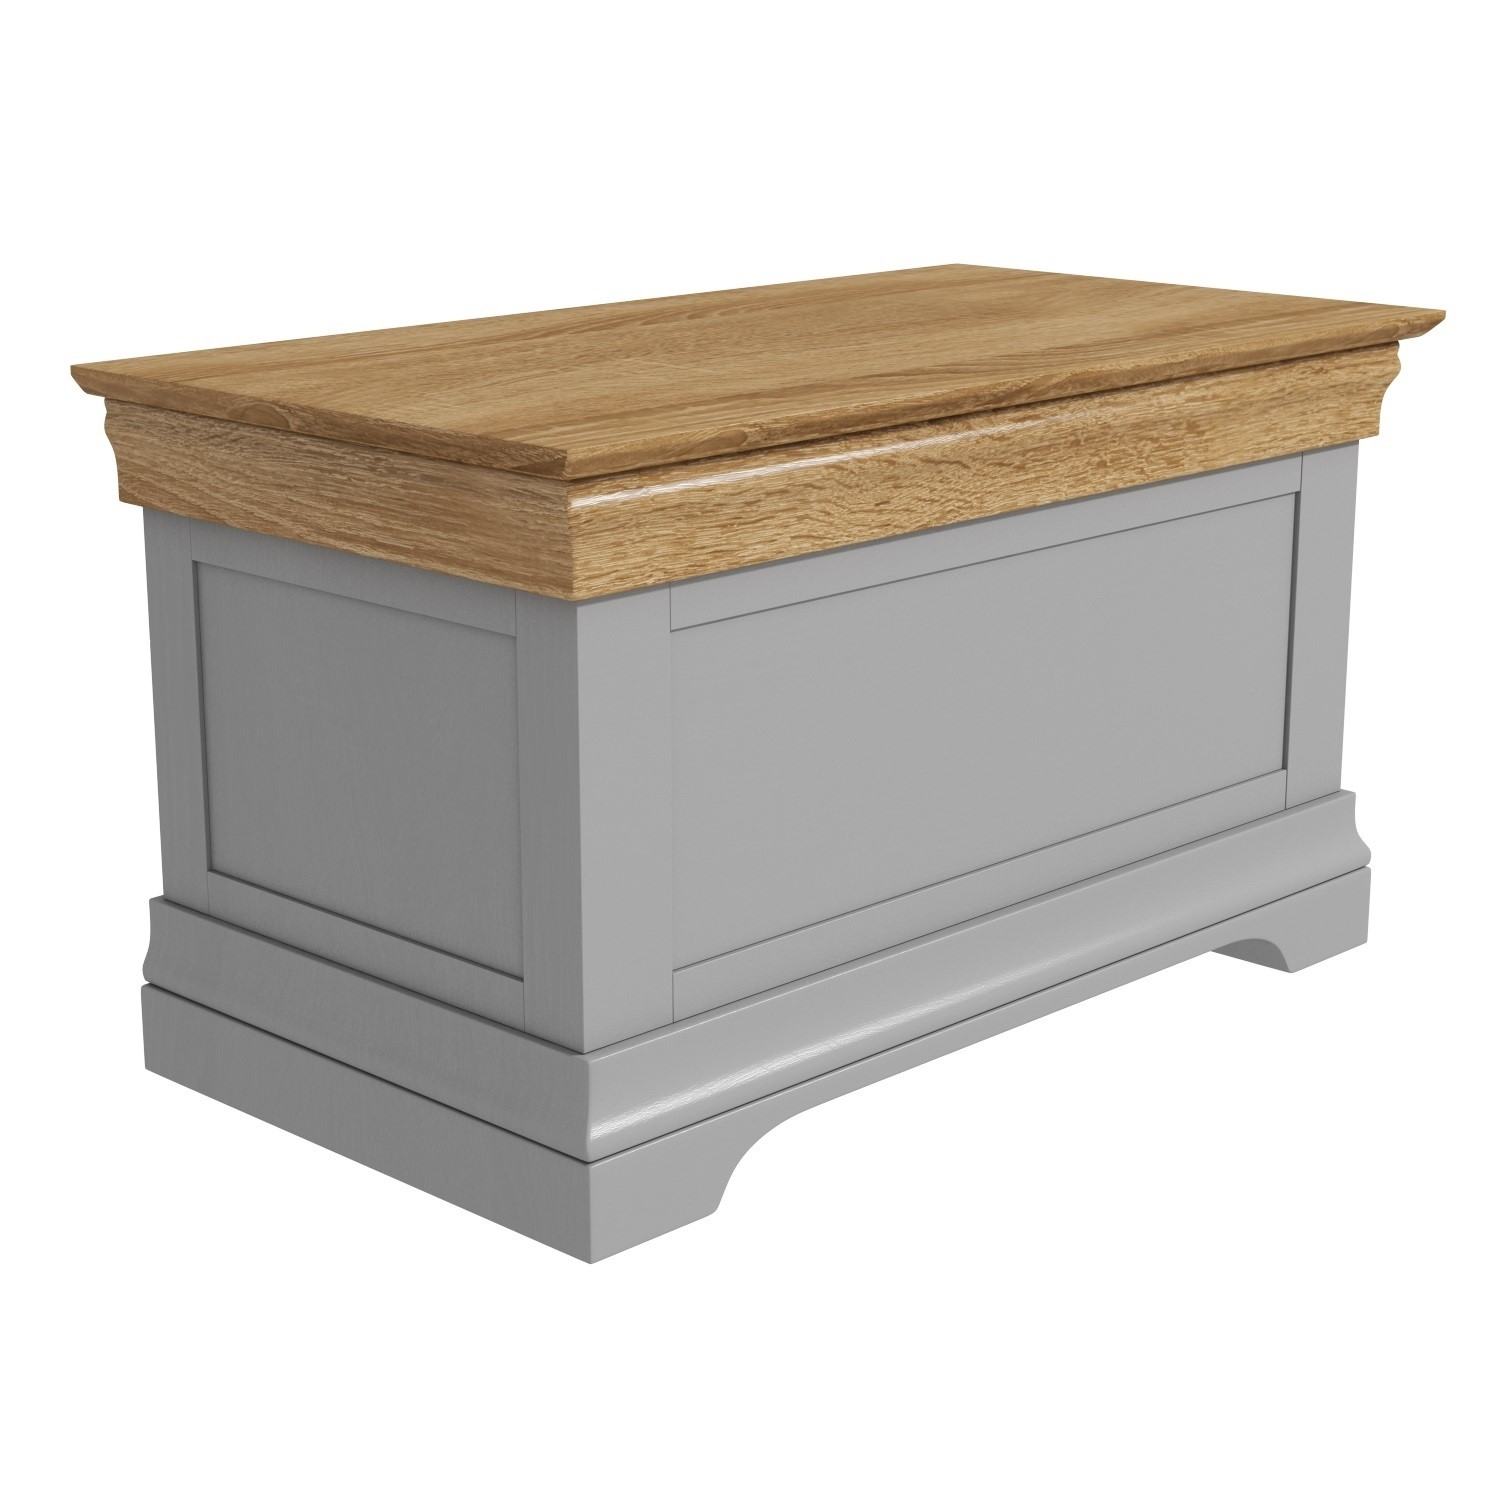 how to build a blanket box